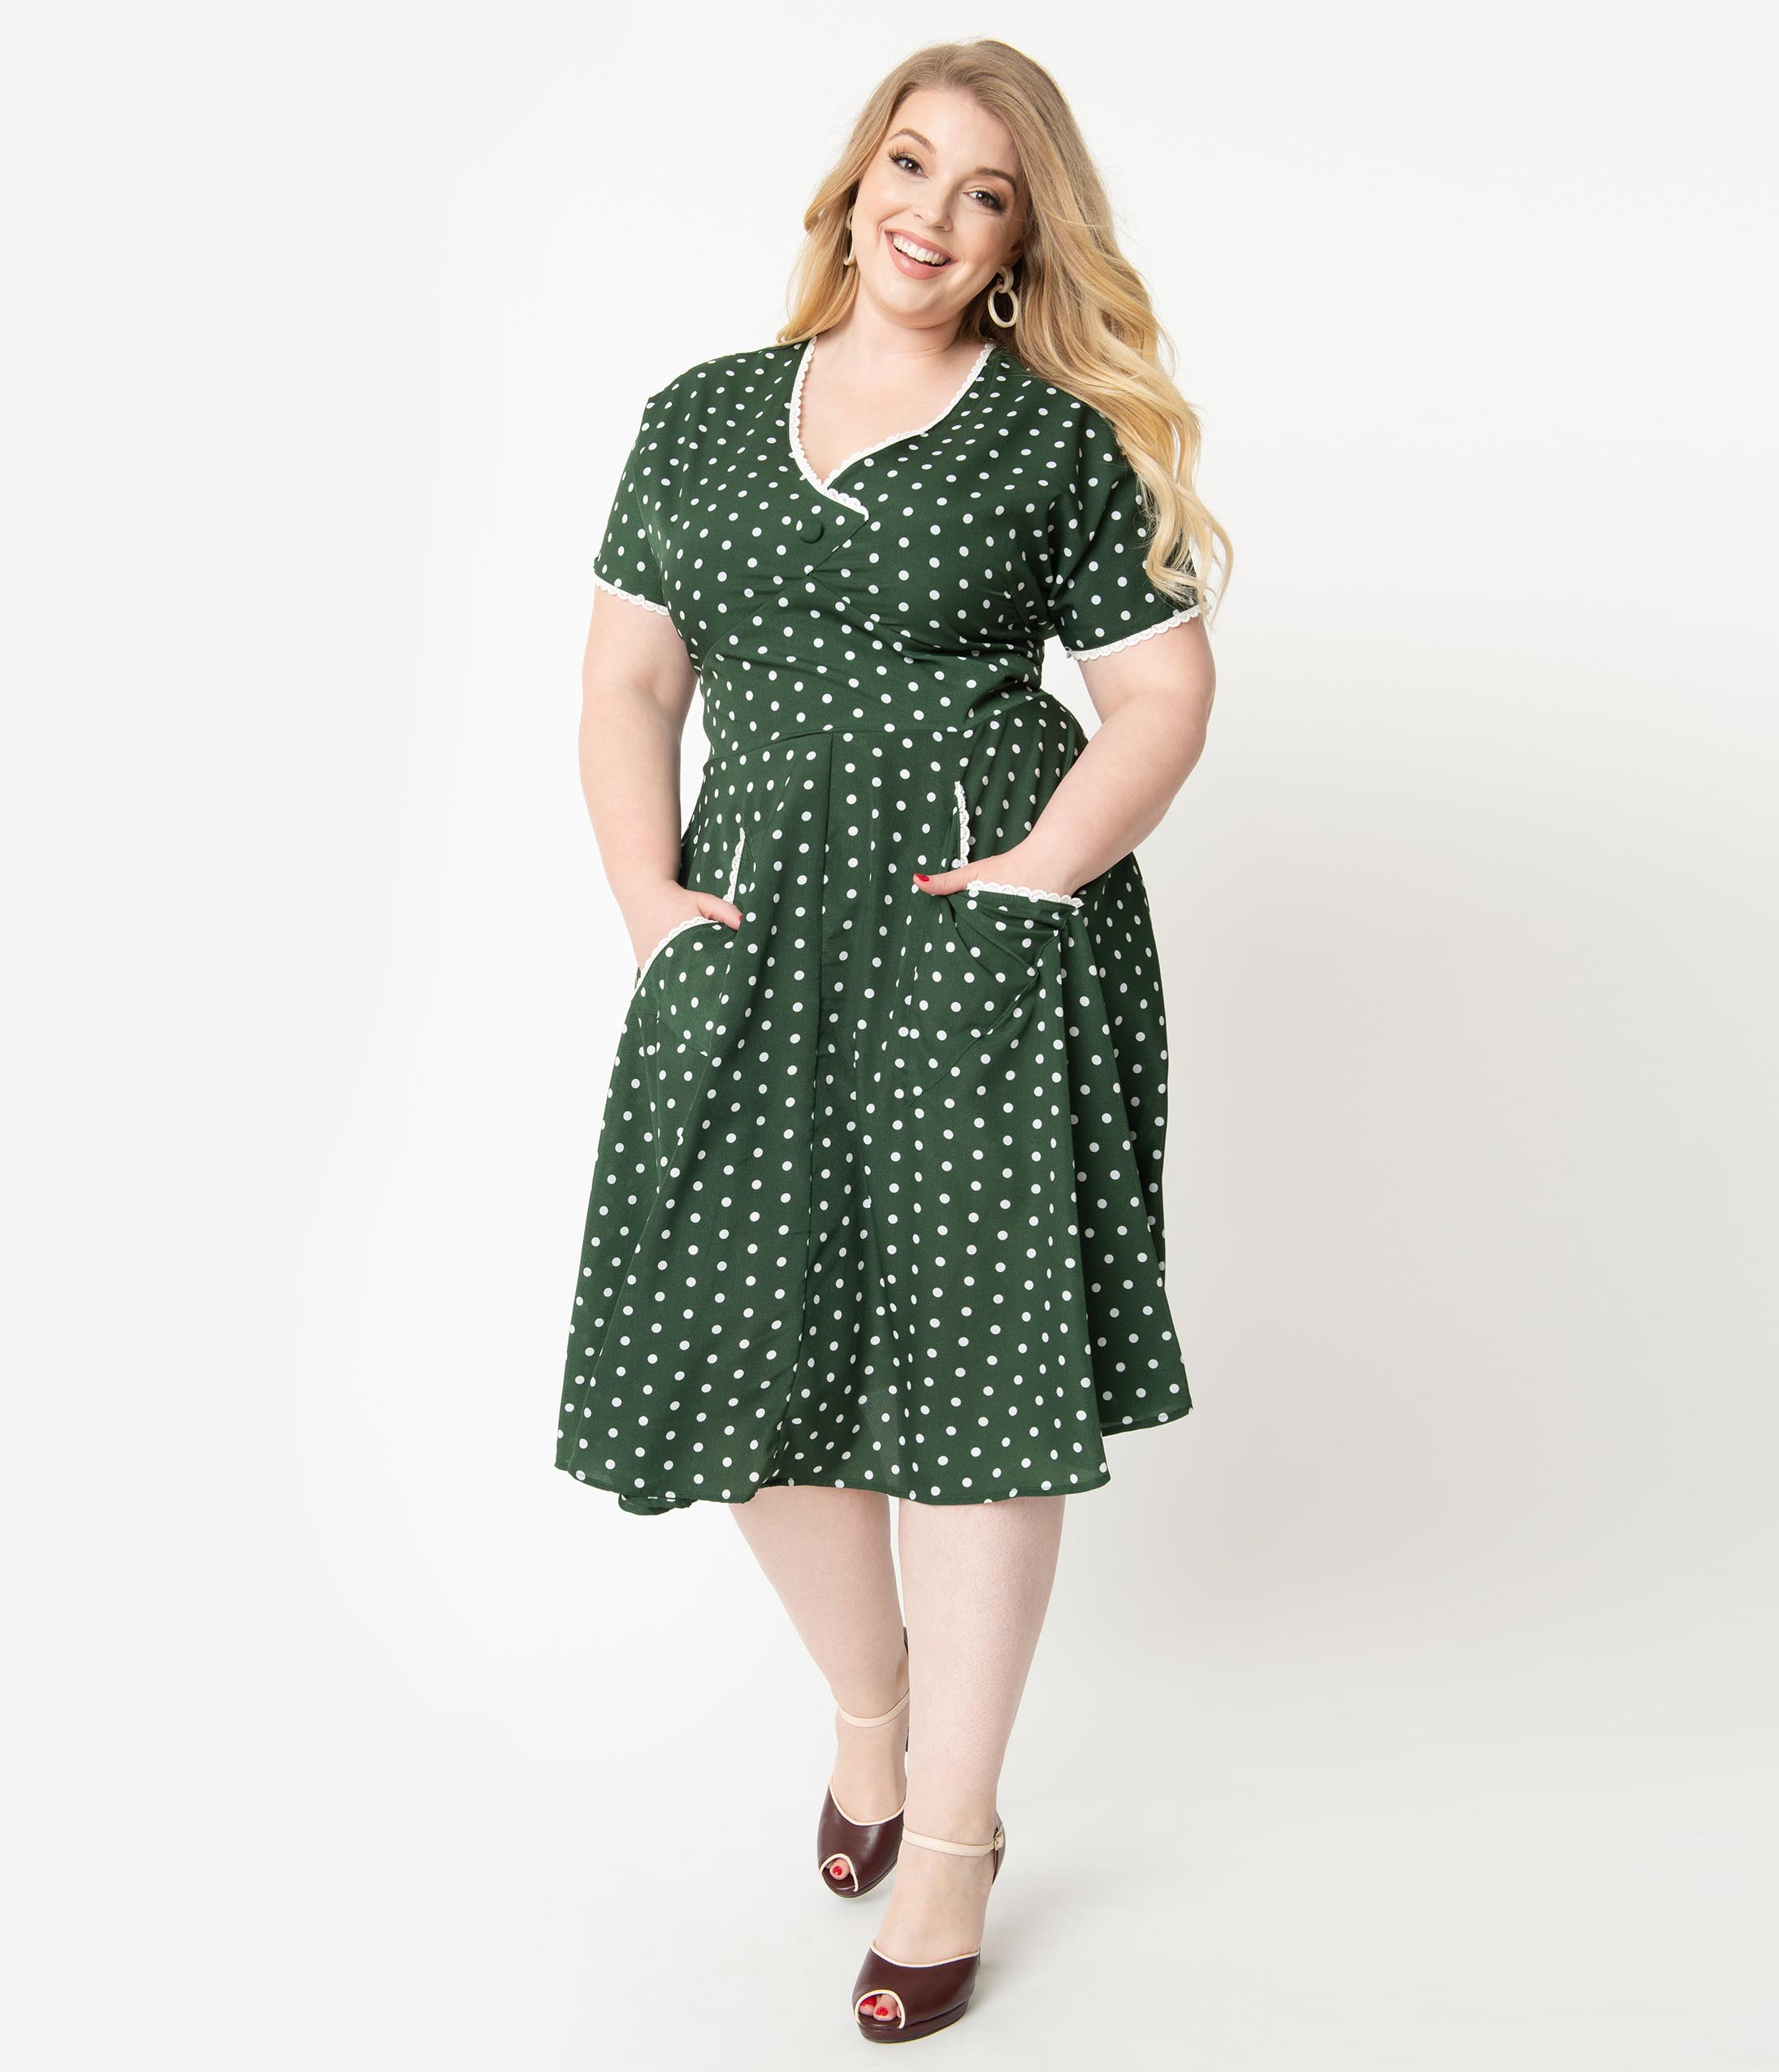 1950s Plus Size Dresses, Swing Dresses Unique Vintage Plus Size 1950S Dark Green  White Polka Dot Goldie Swing Dress $78.00 AT vintagedancer.com